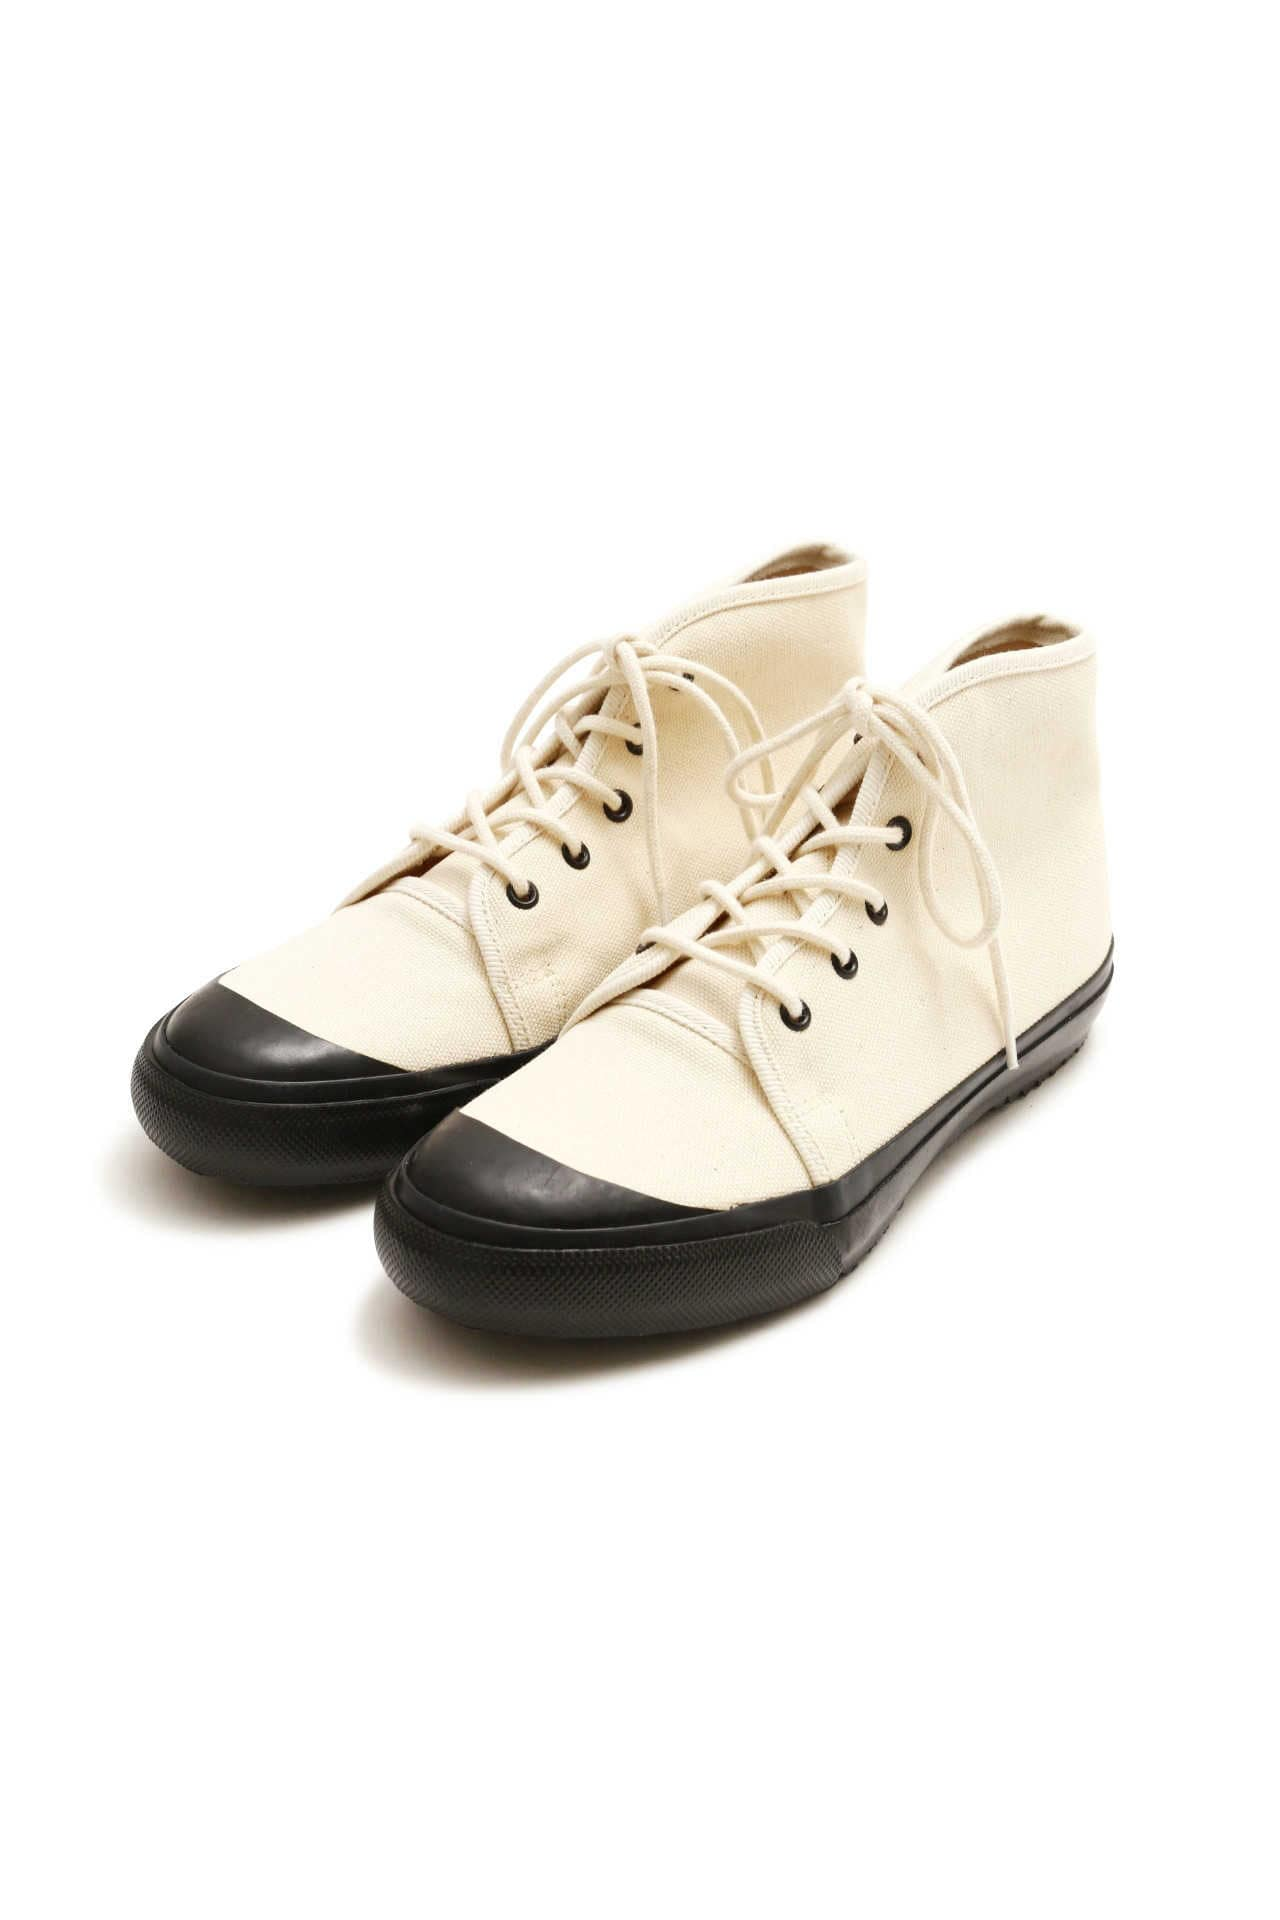 MILITARY HIGH TOP BOOT6